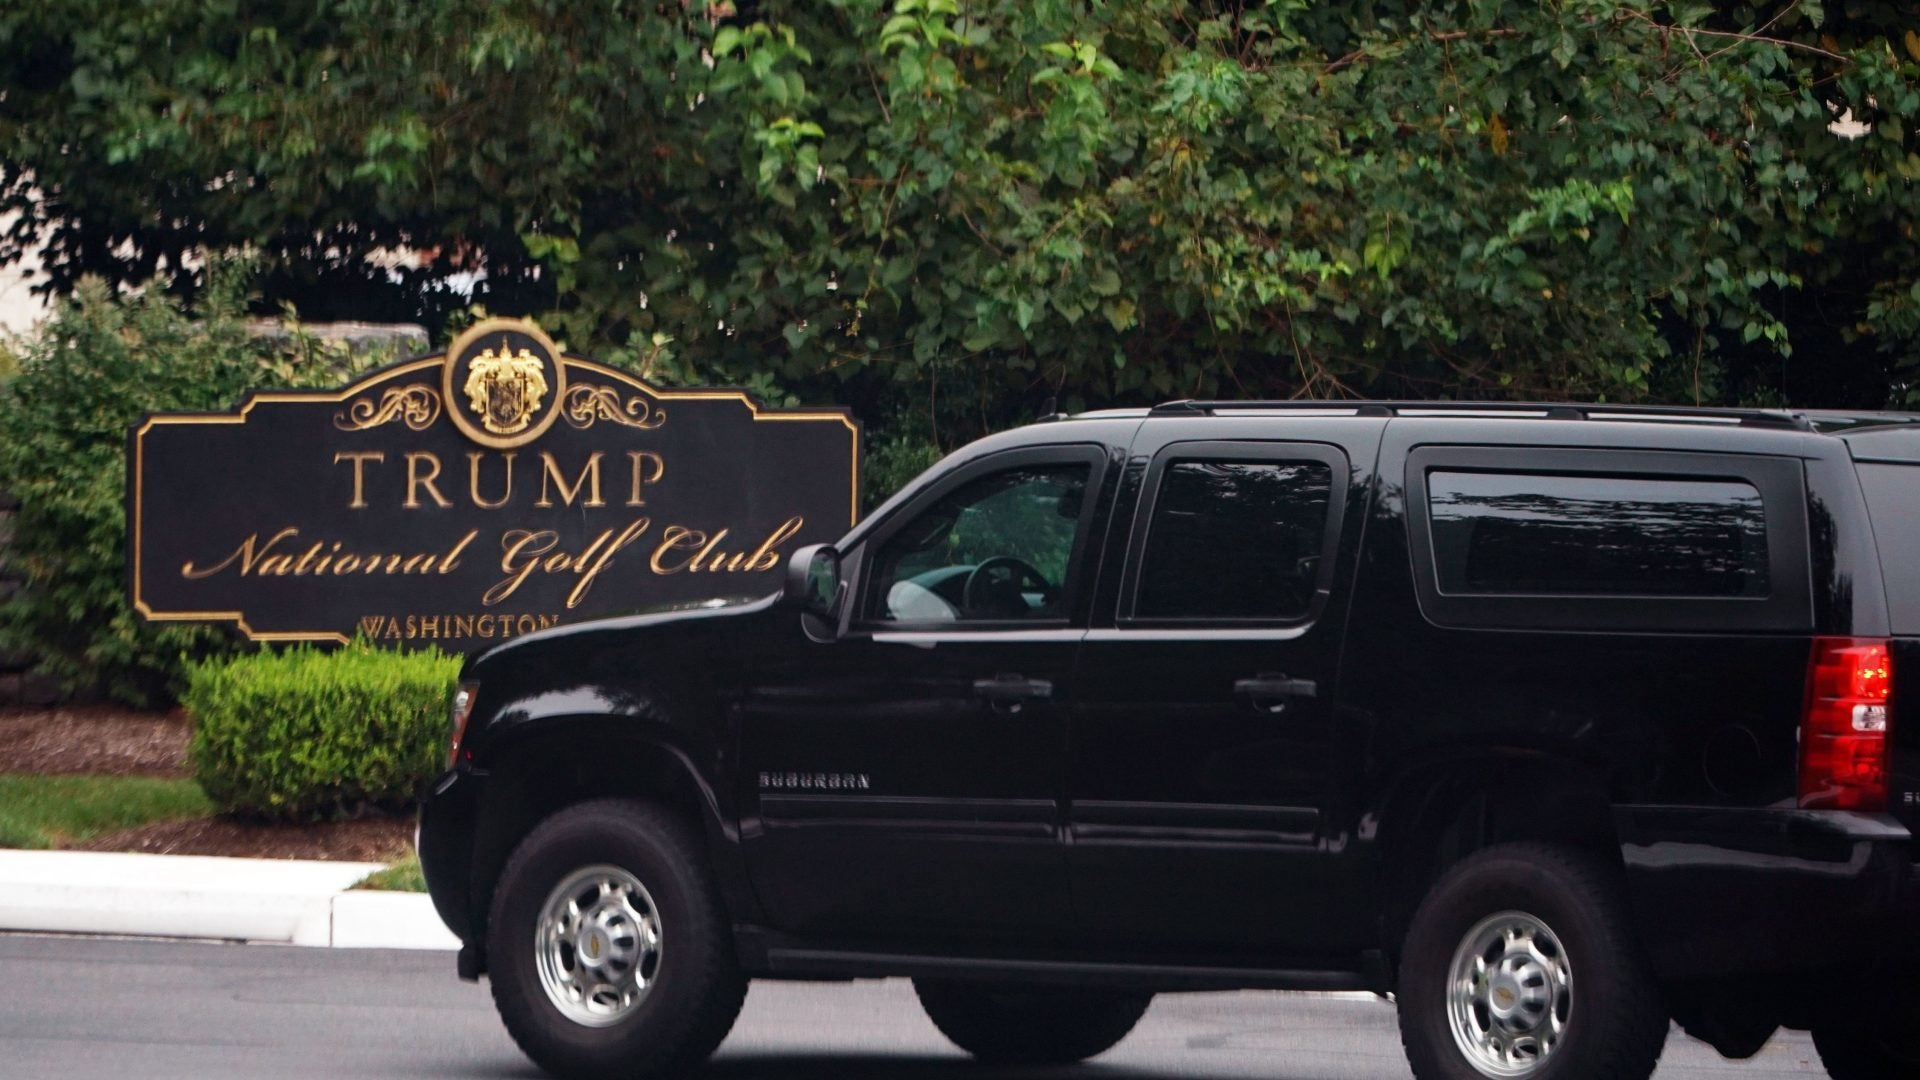 Secret Service Places 'Emergency Order' For Golf Carts In Town With Trump Club